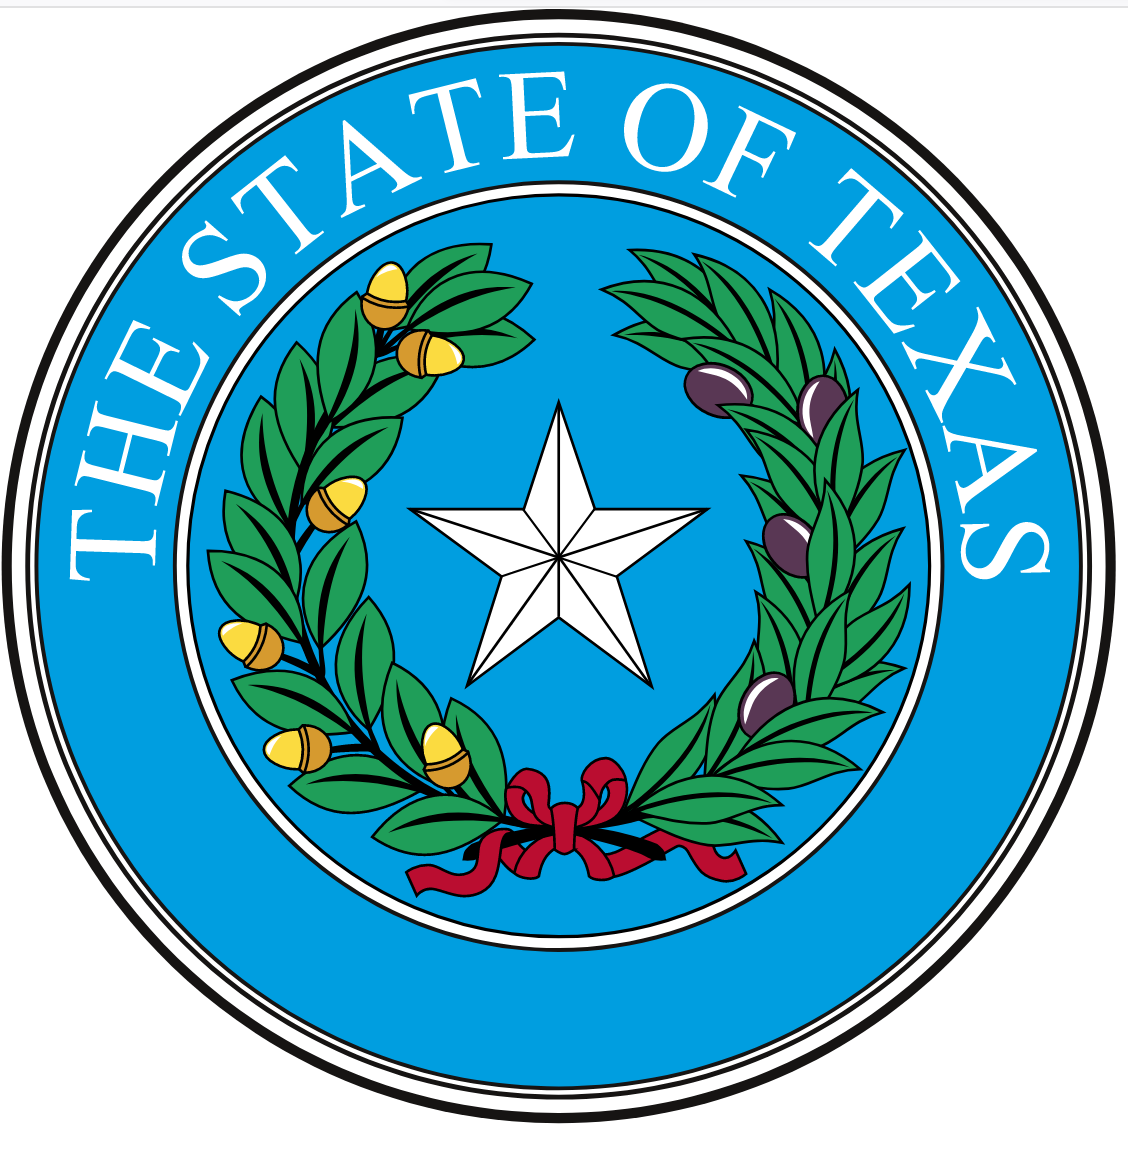 Texas - Identity Theft Enforcement and Protection Act